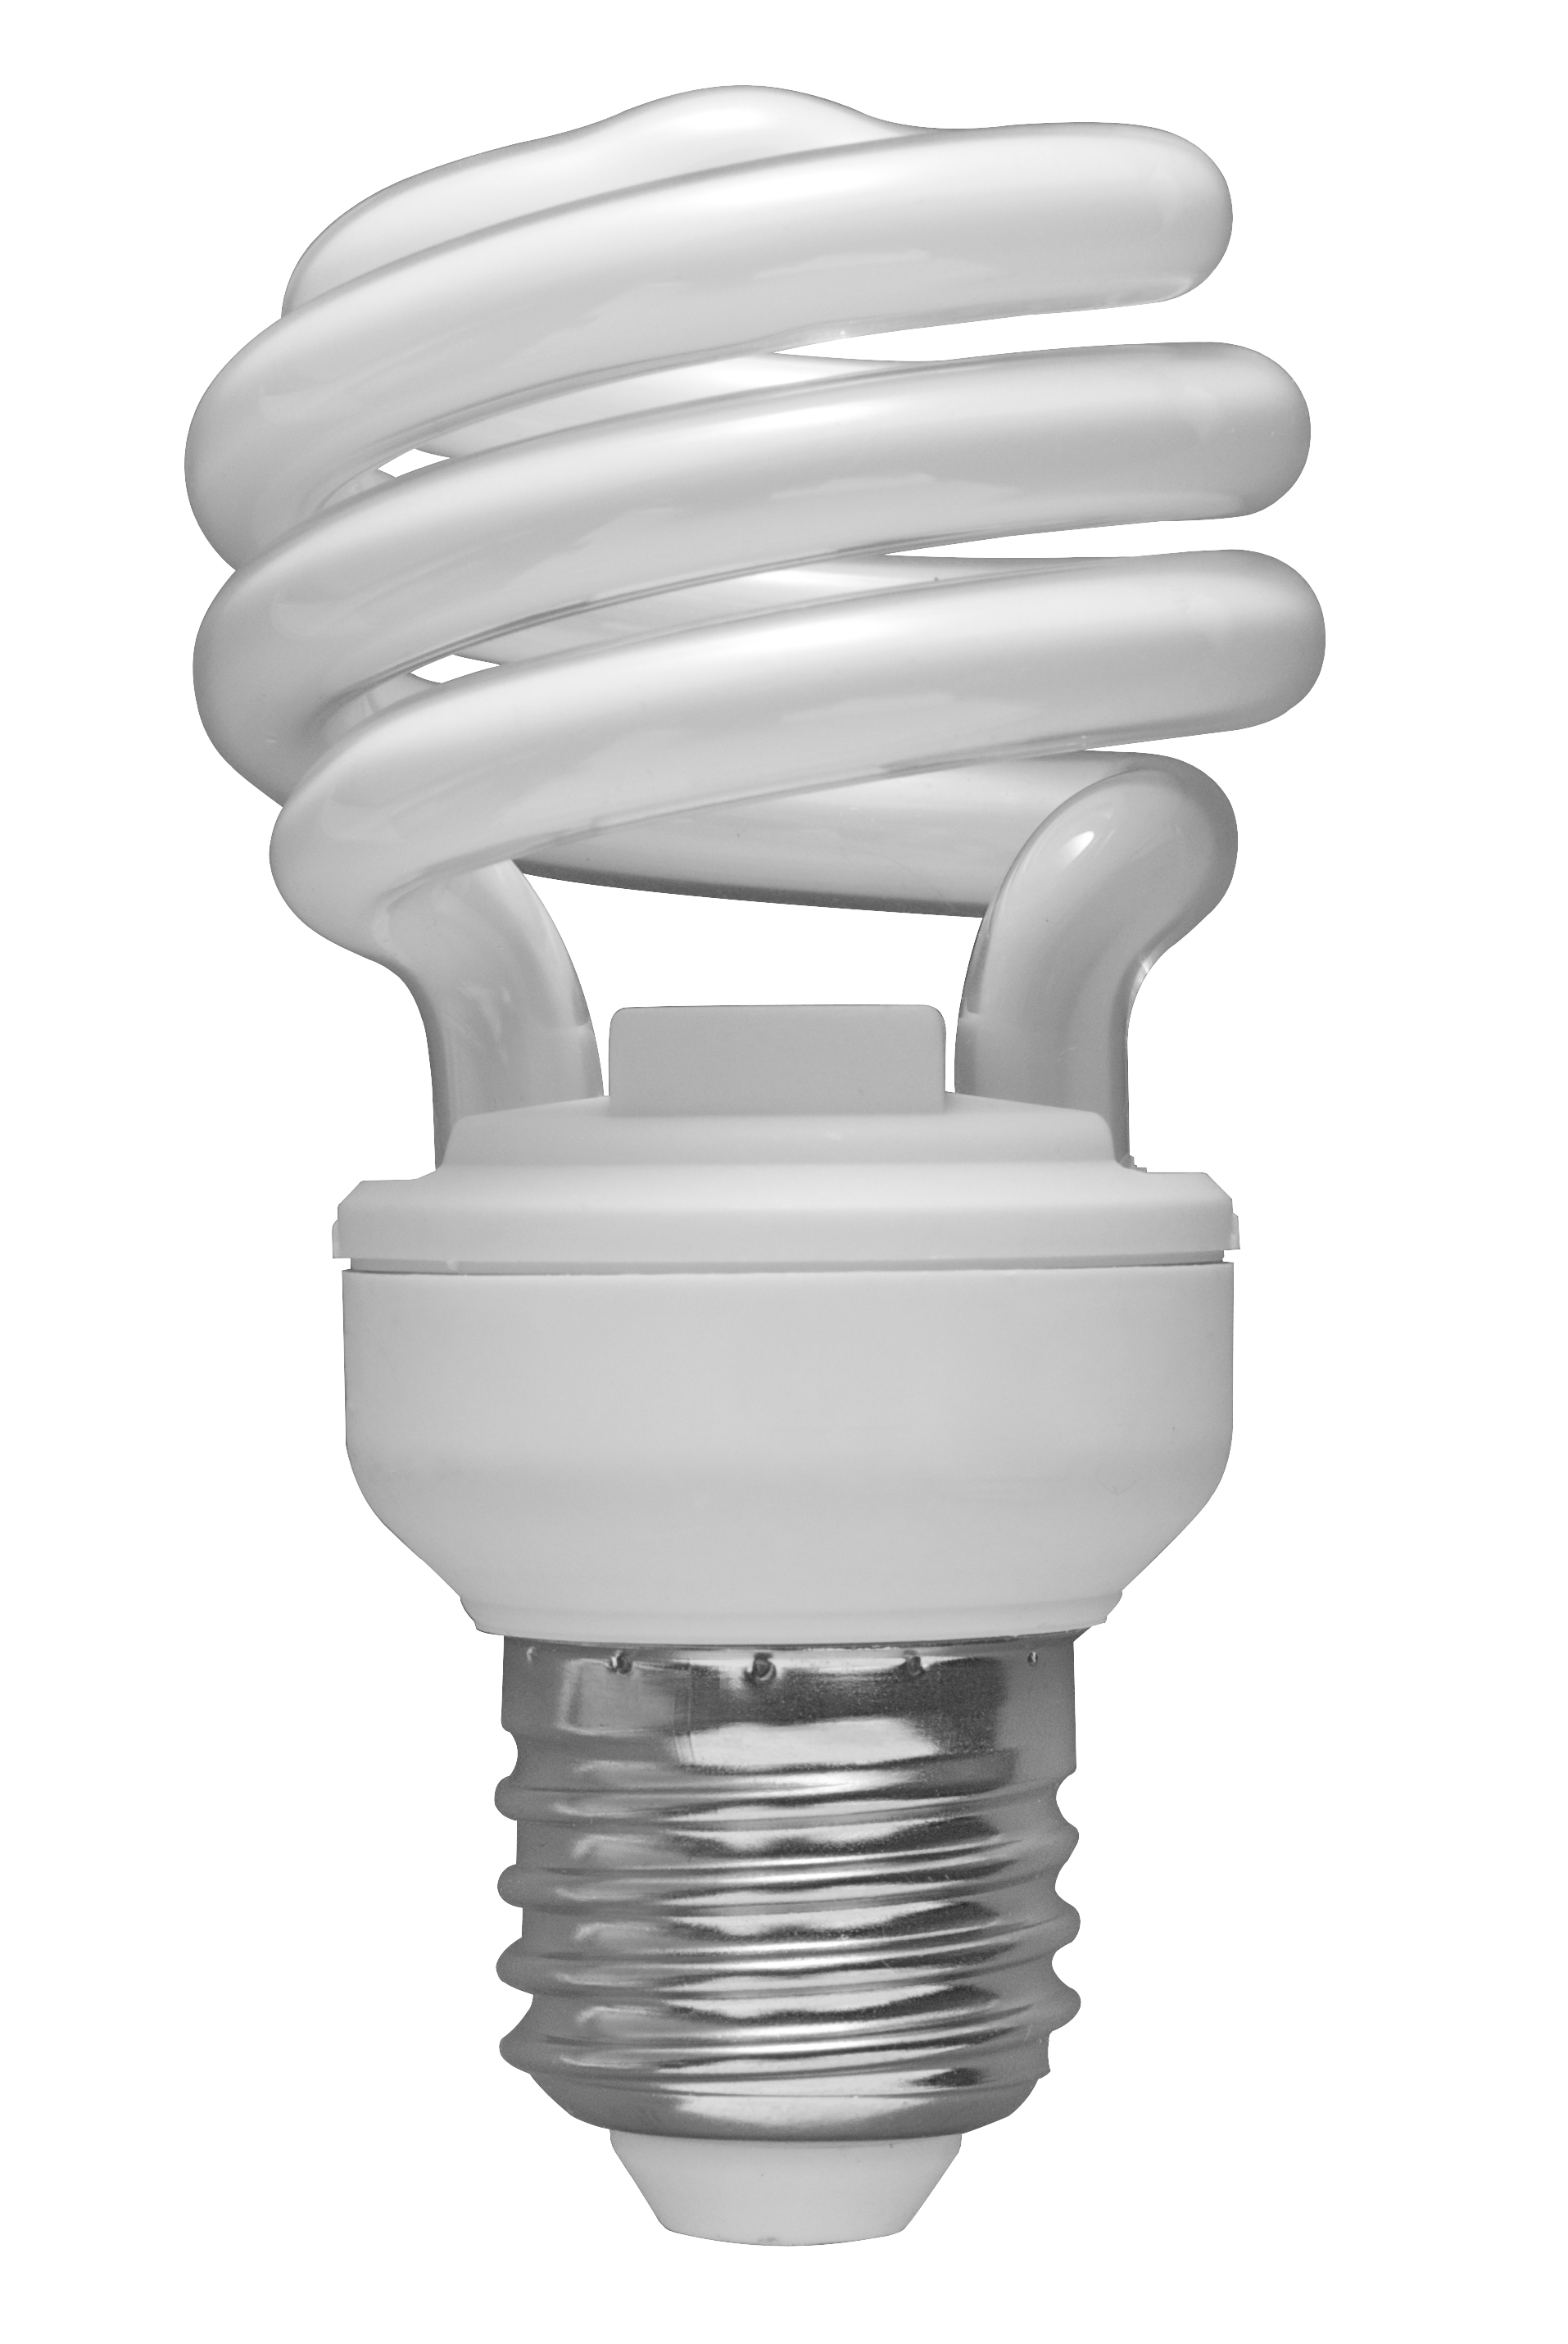 While efficient, there has been no great interest in the consumer market to lamps with poorer quality at higher prices.